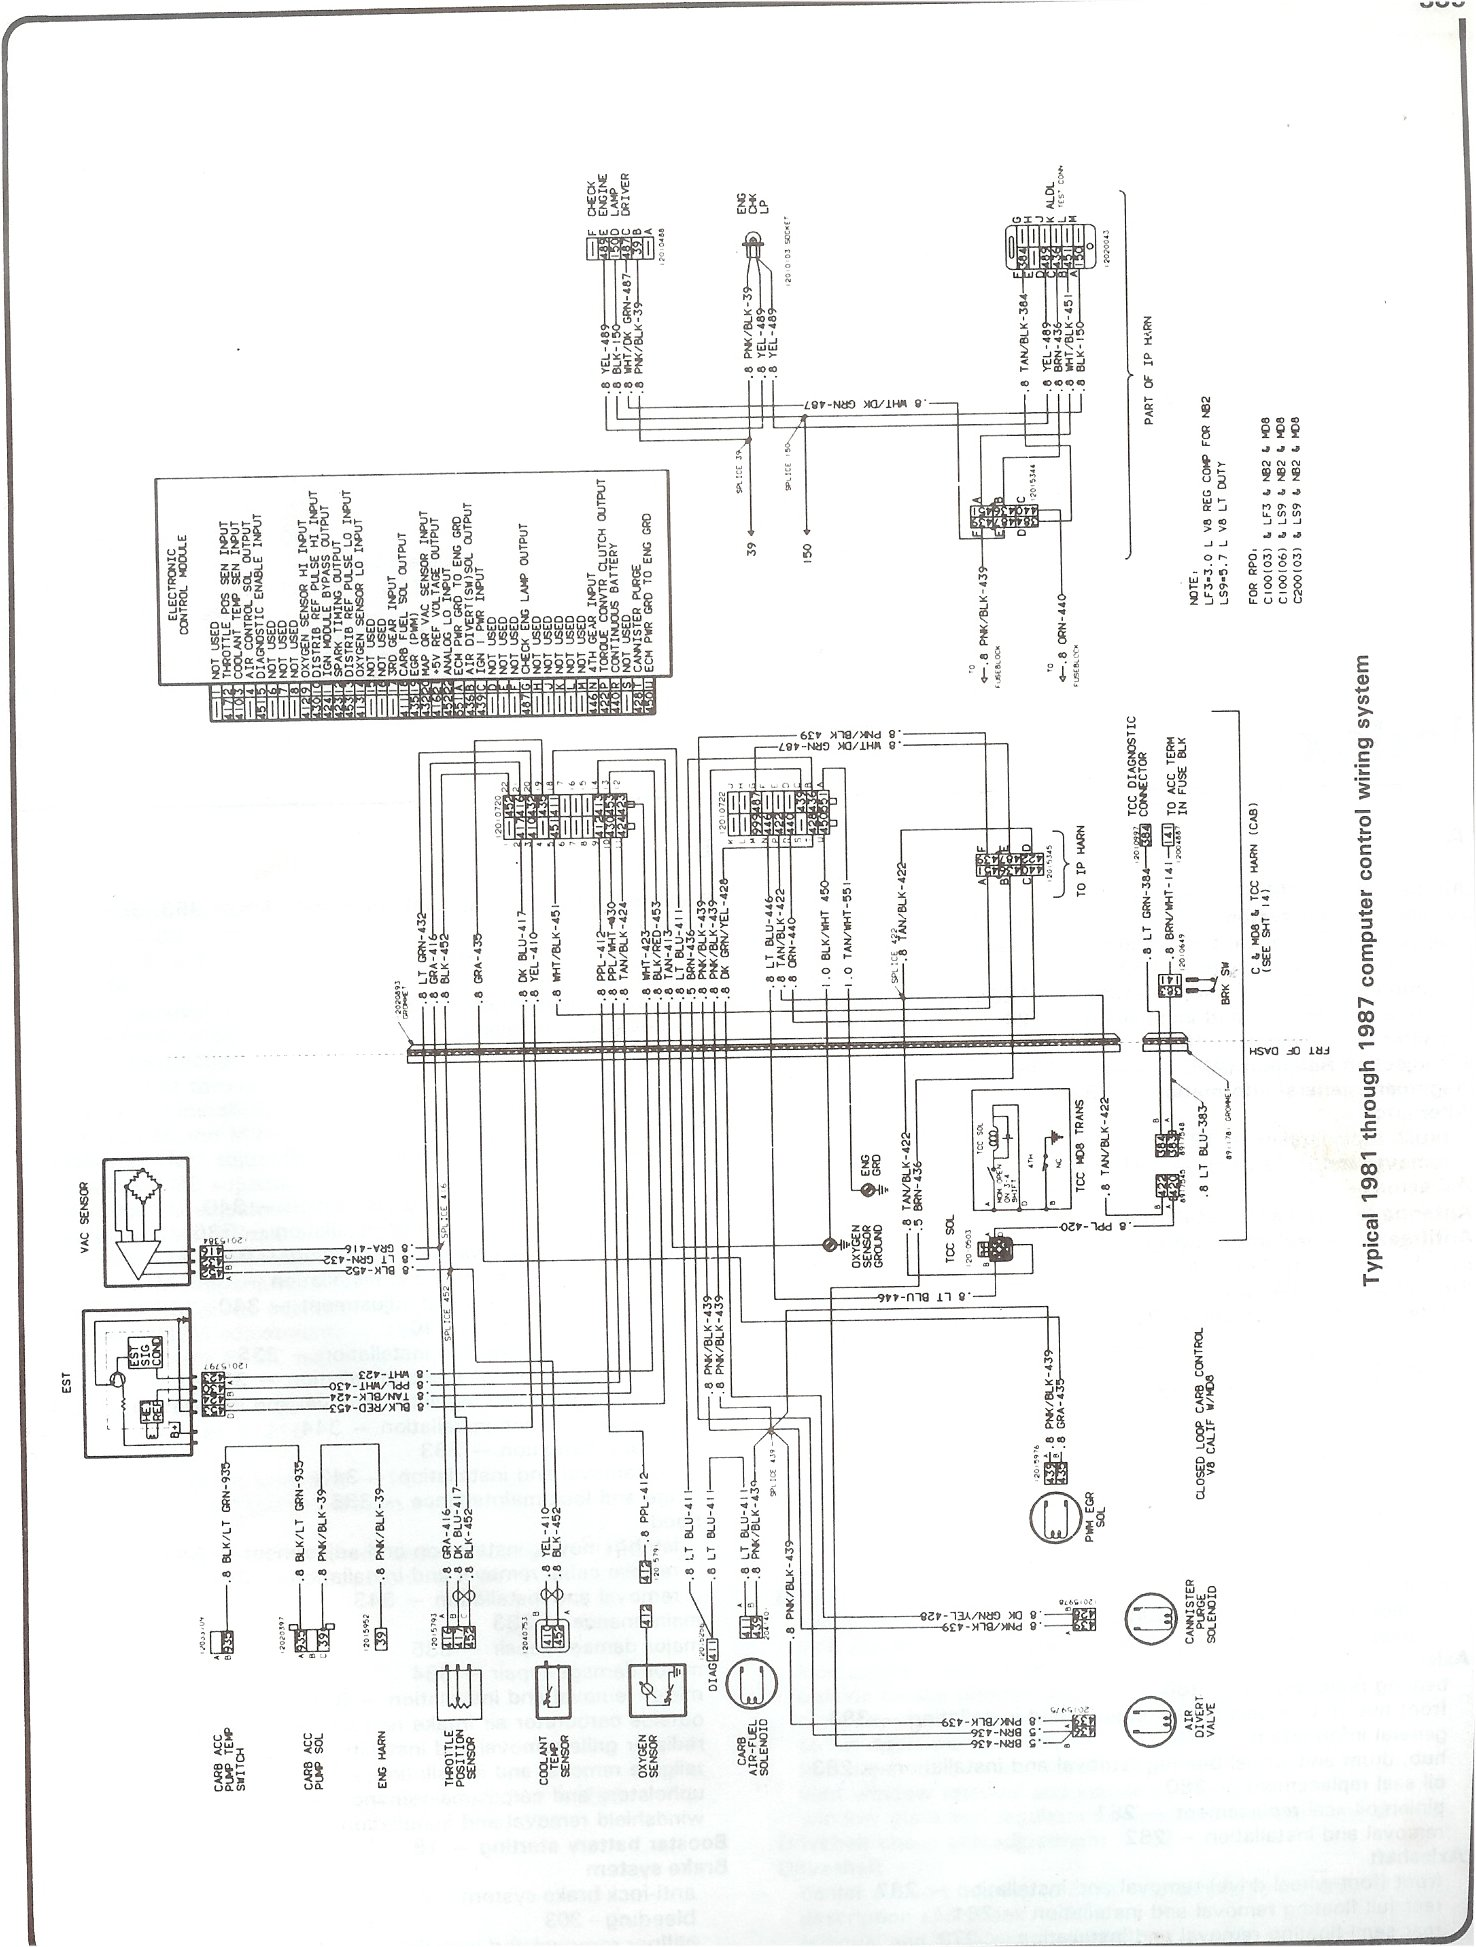 hight resolution of 75 nova wiper wiring diagram data diagram schematic1975 nova wiring diagram wiring diagram repair guides 1973